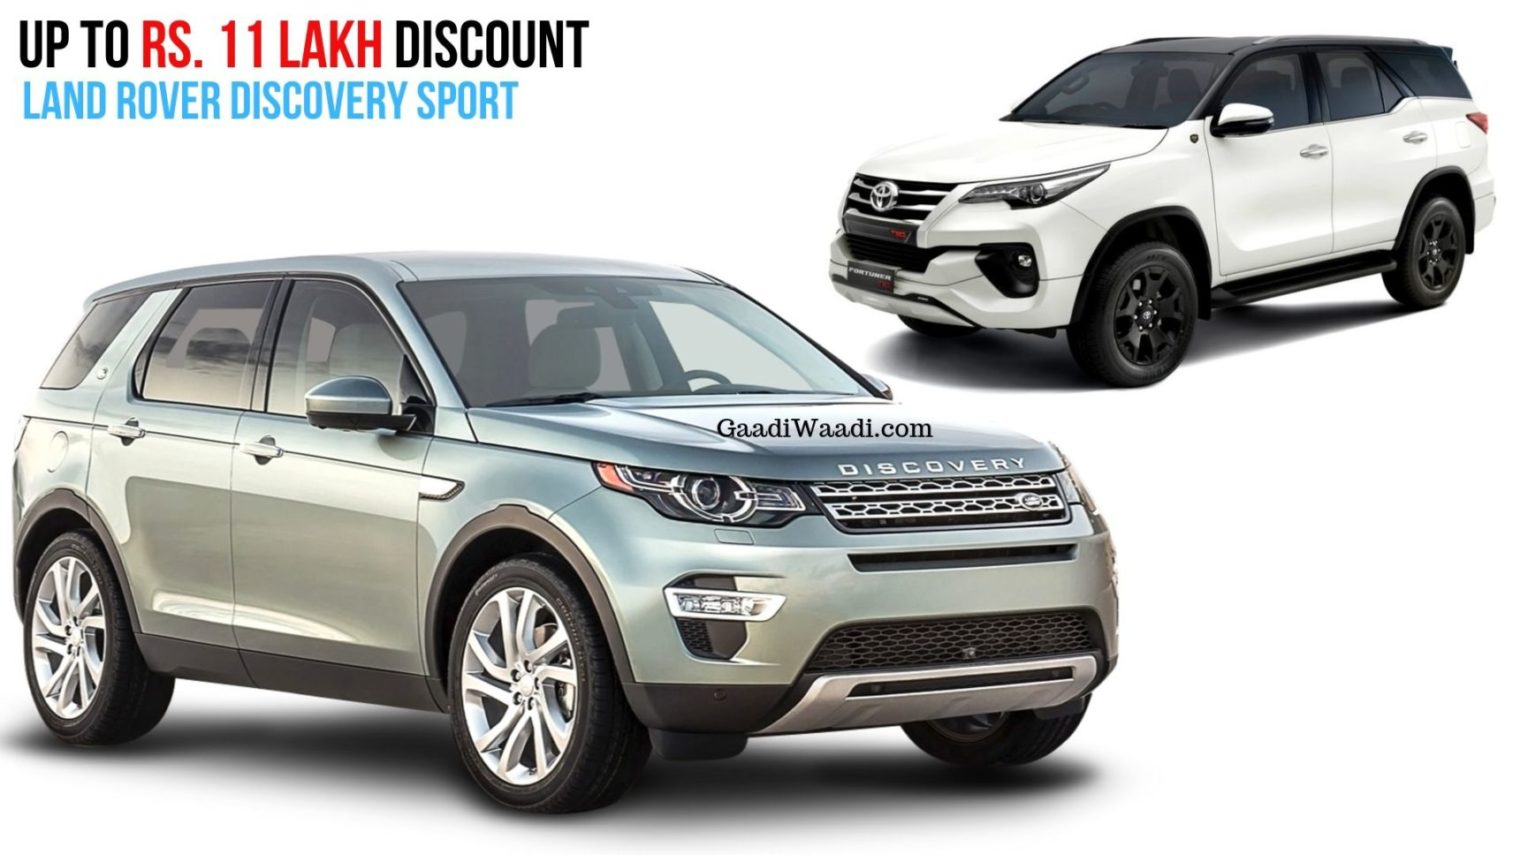 Rs. 11 Lakh Discount On Land Rover Discovery Sport, Cheaper Than Toyota Fortuner - GaadiWaadi.com thumbnail